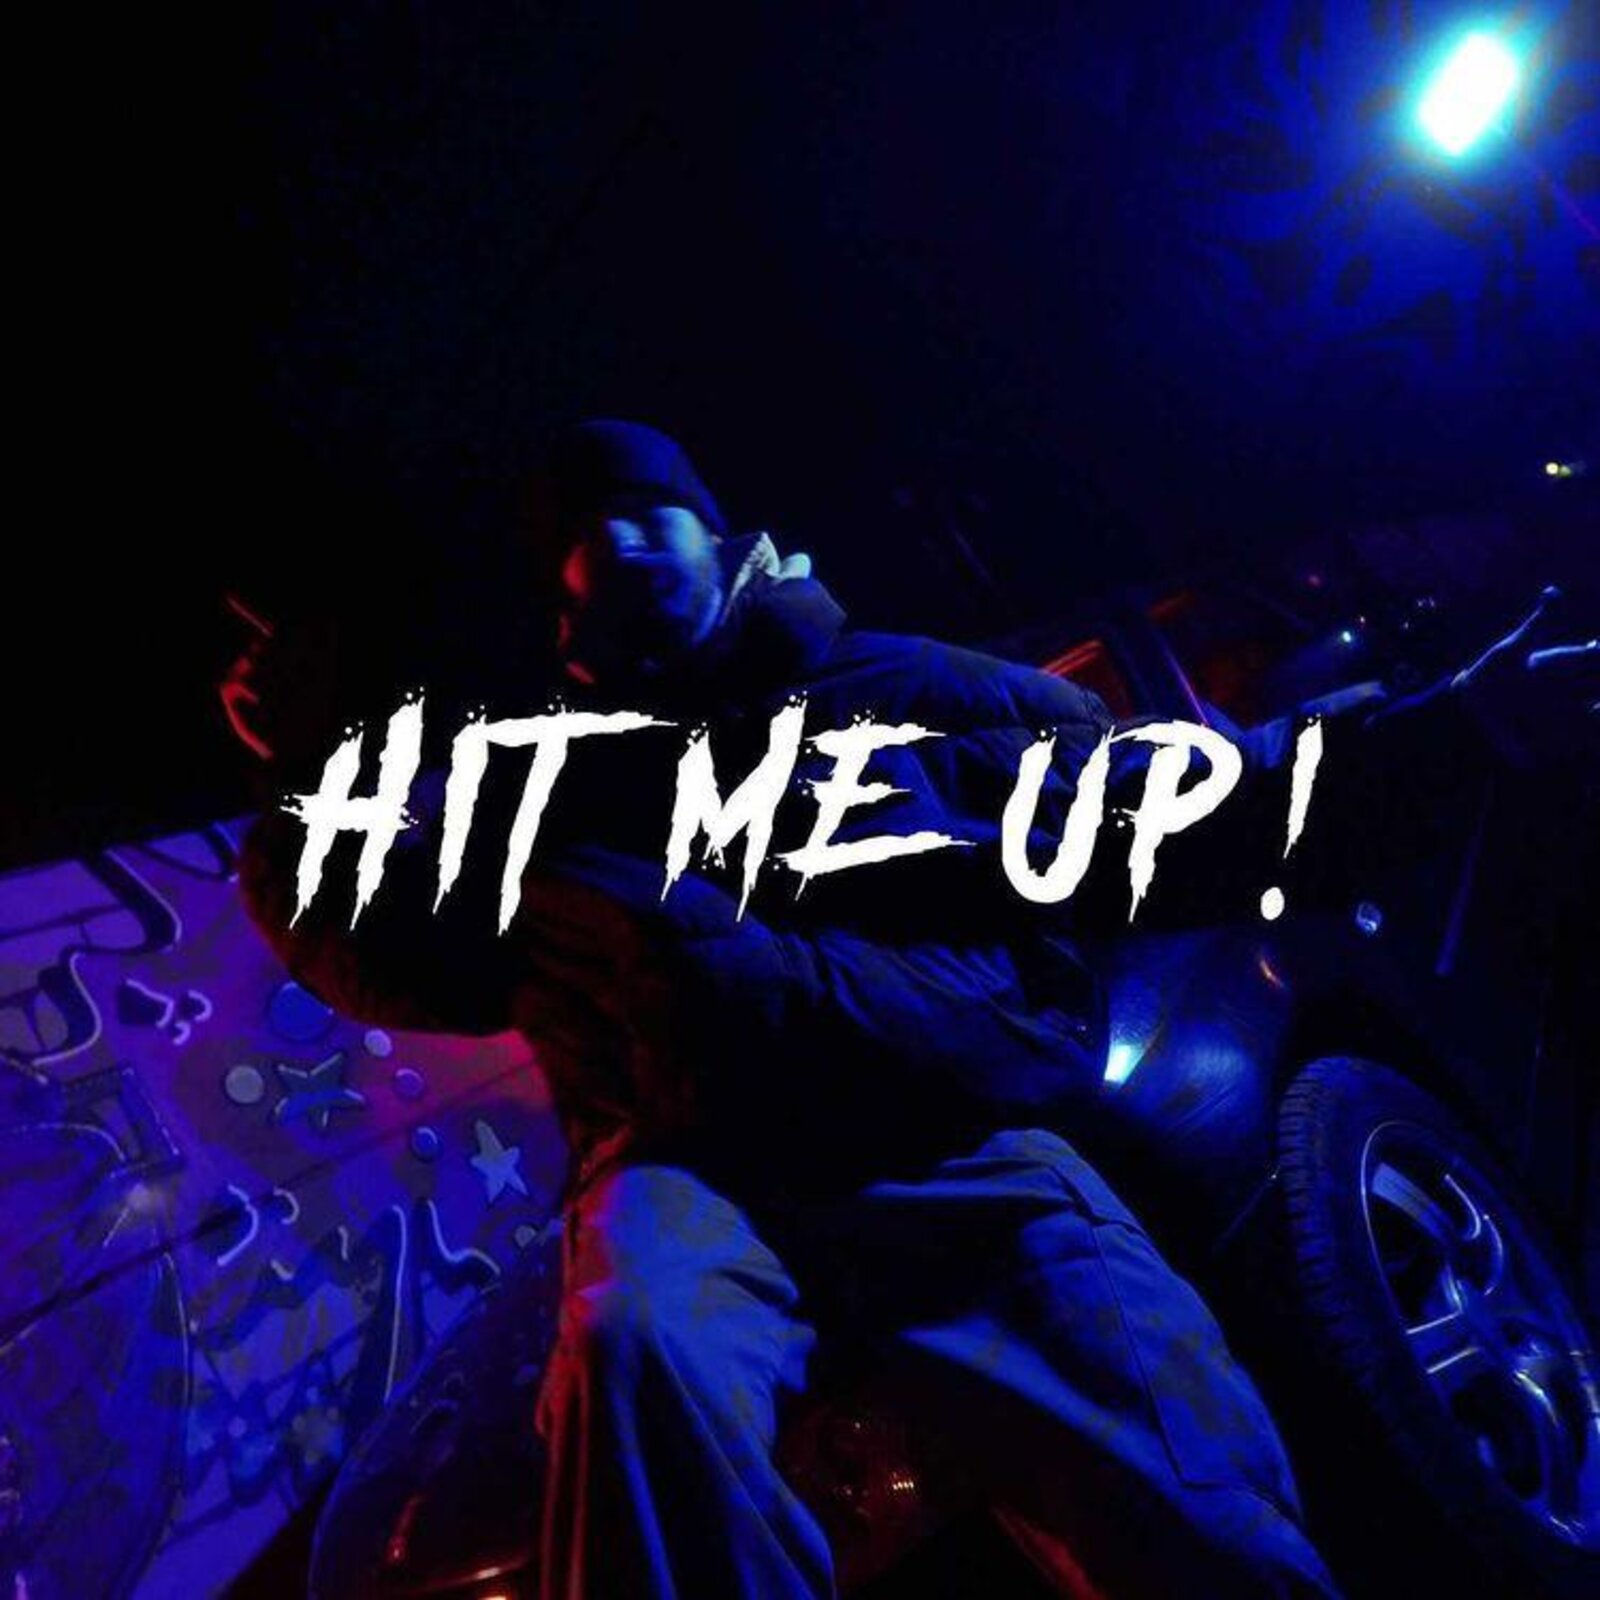 Upcoming: Jago - Hit Me Up (prod. By Linu$)